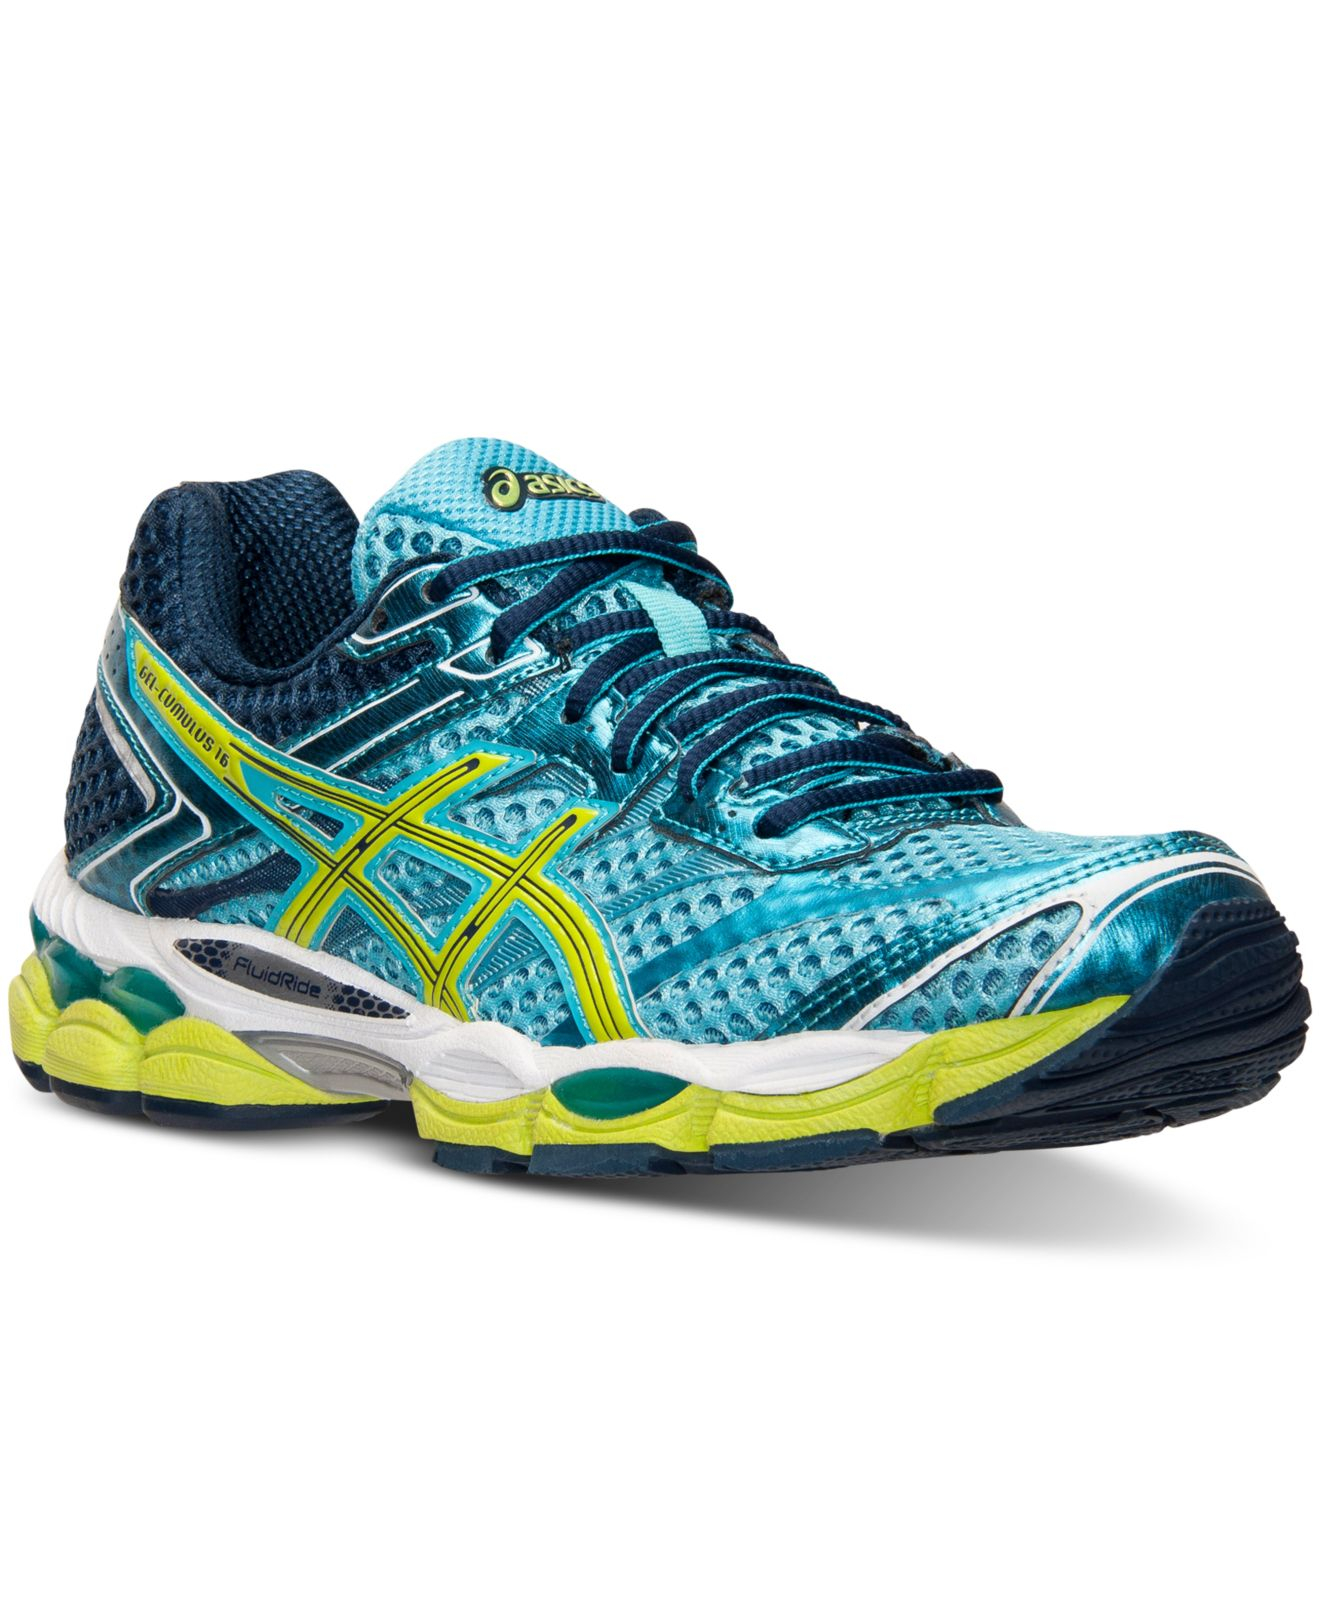 asics women 39 s gel cumulus 16 2a running sneakers from finish line in blue for men lyst. Black Bedroom Furniture Sets. Home Design Ideas